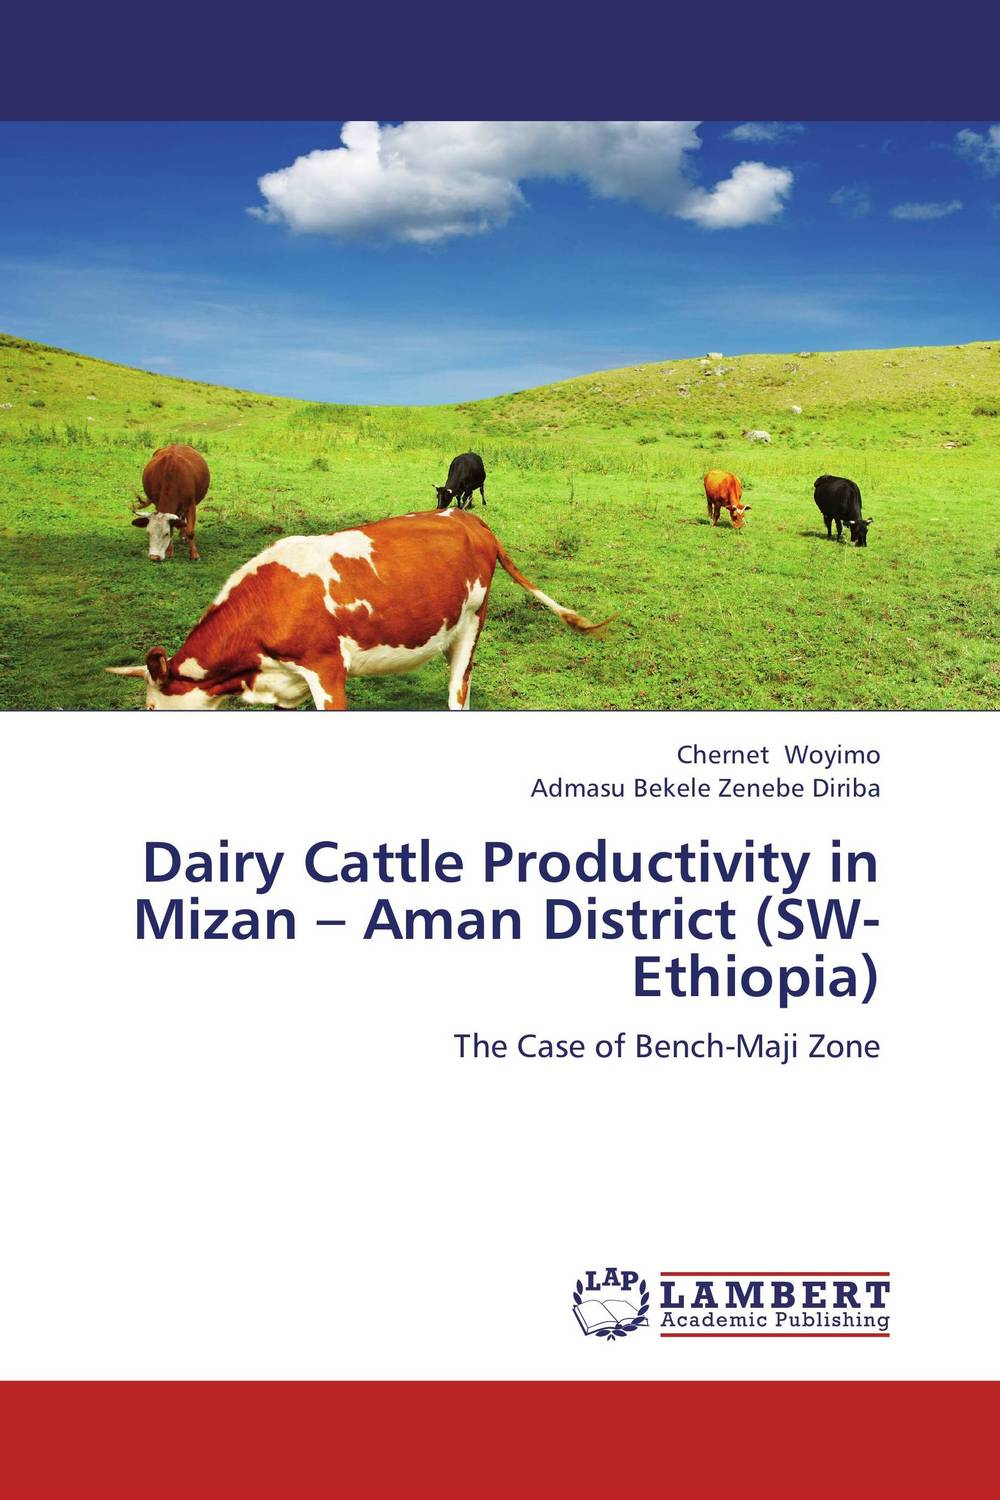 Dairy Cattle Productivity in Mizan – Aman District (SW-Ethiopia) found in brooklyn